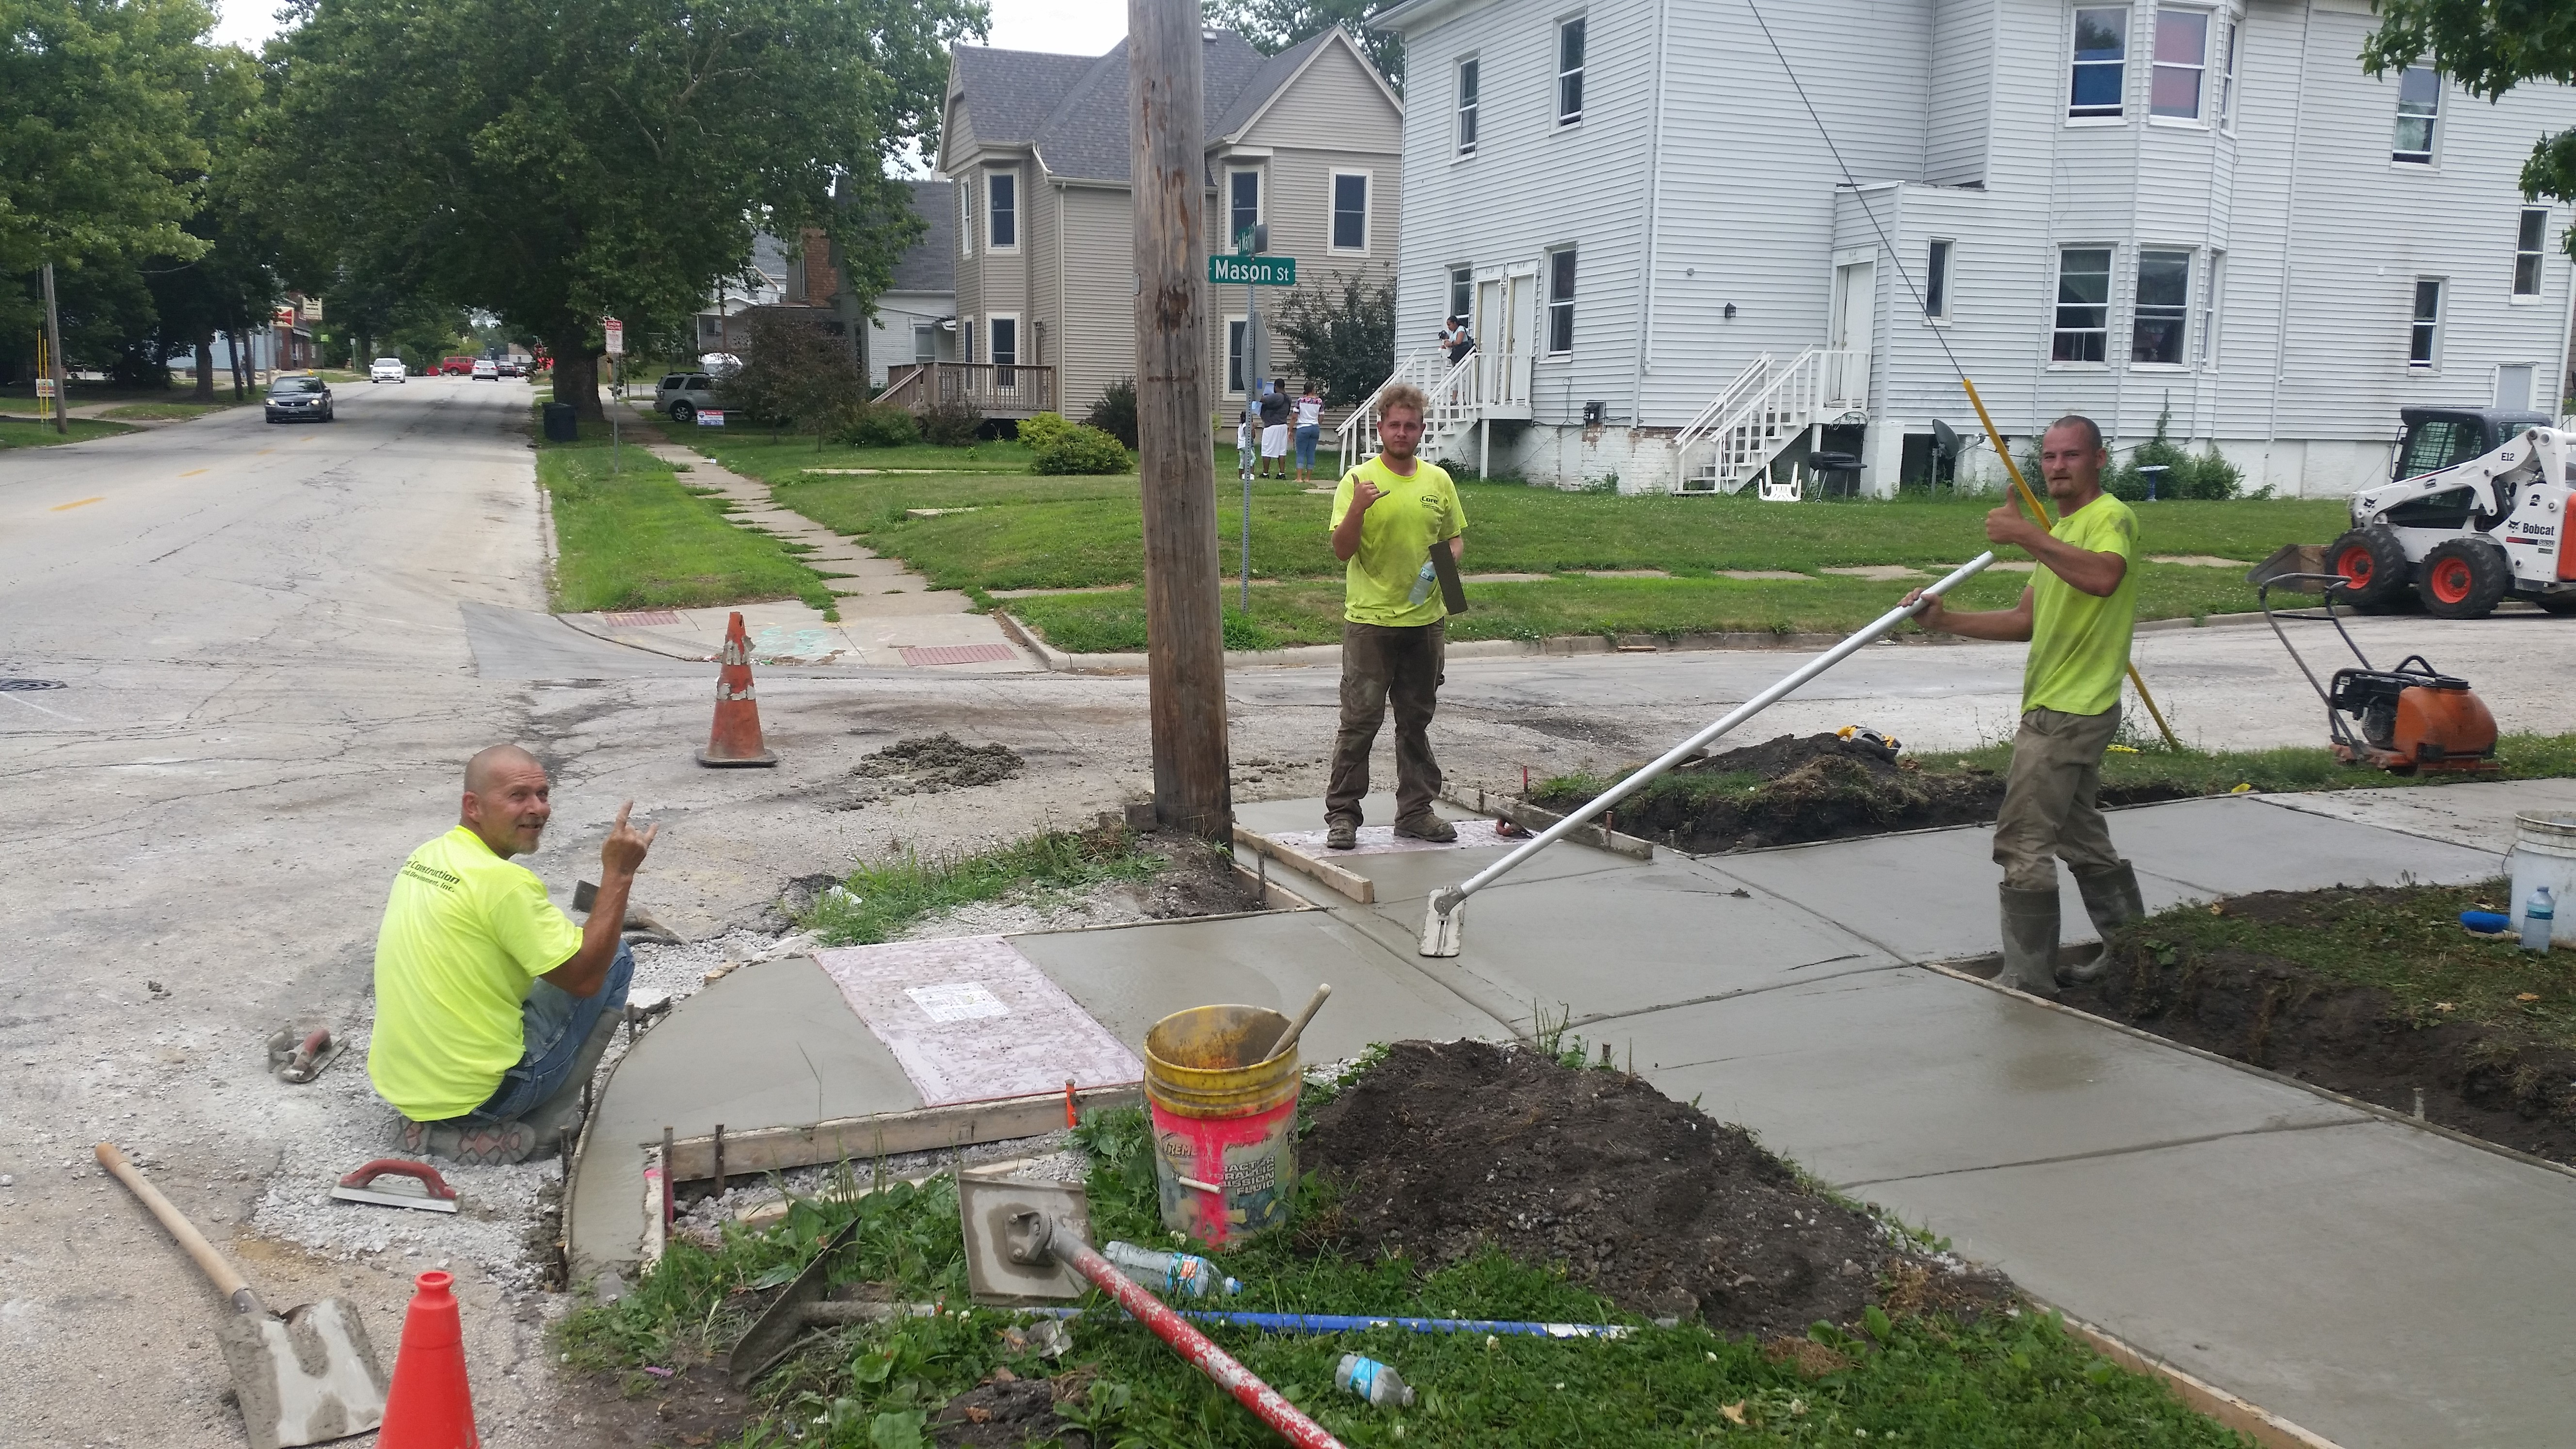 We made sure not step in the new concrete